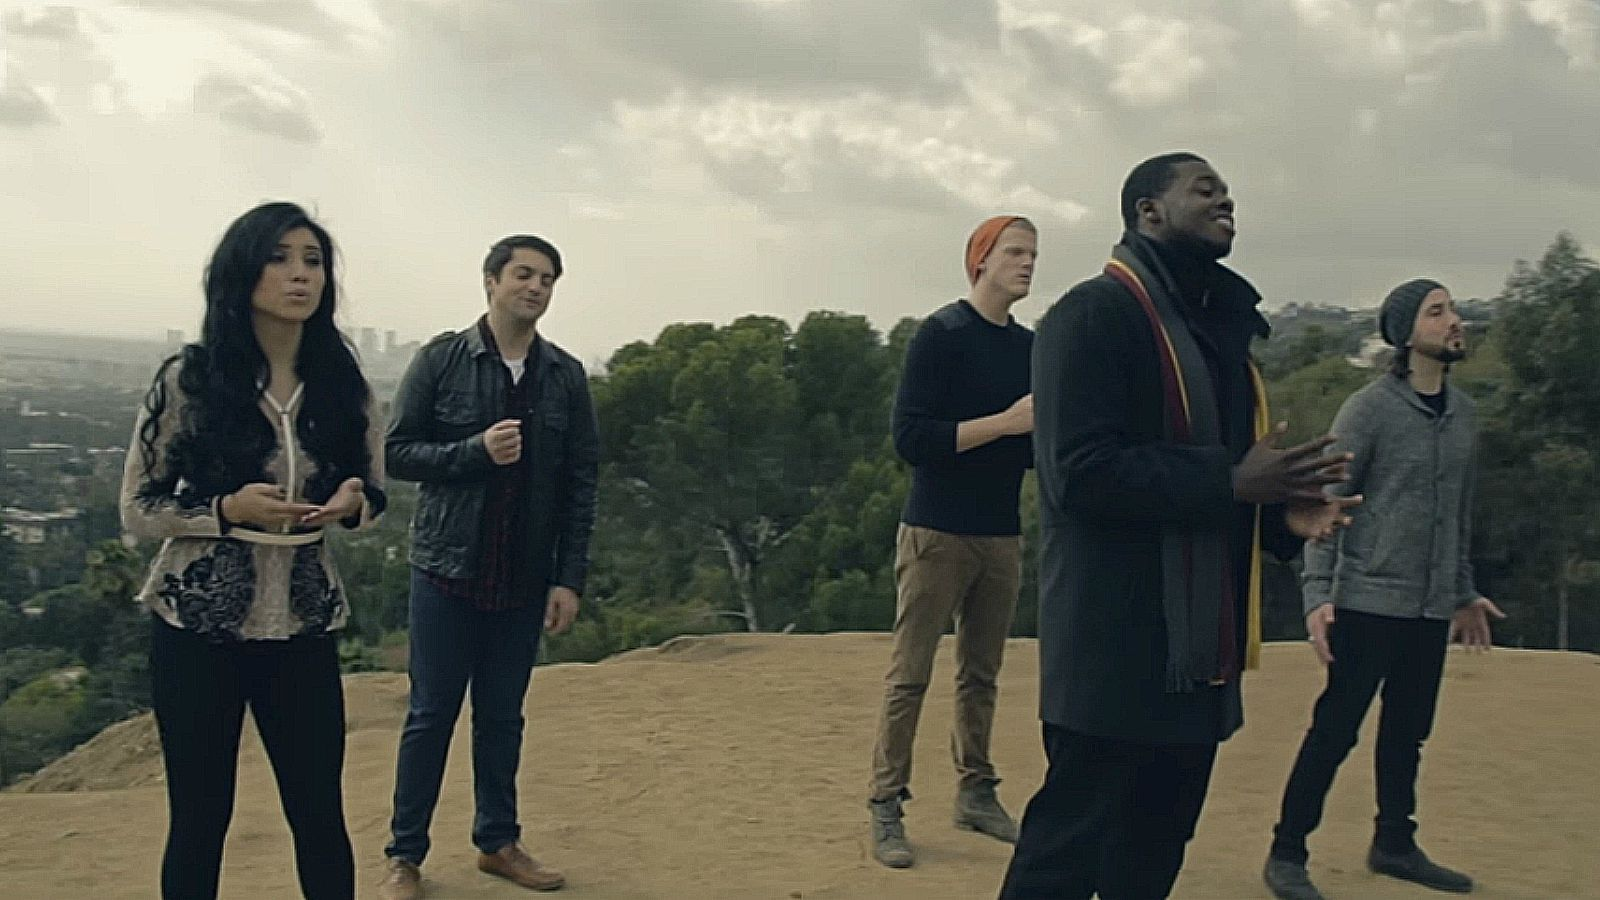 Pentatonix Sings 'Little Drummer Boy' A Capella and It Will Warm Your Heart